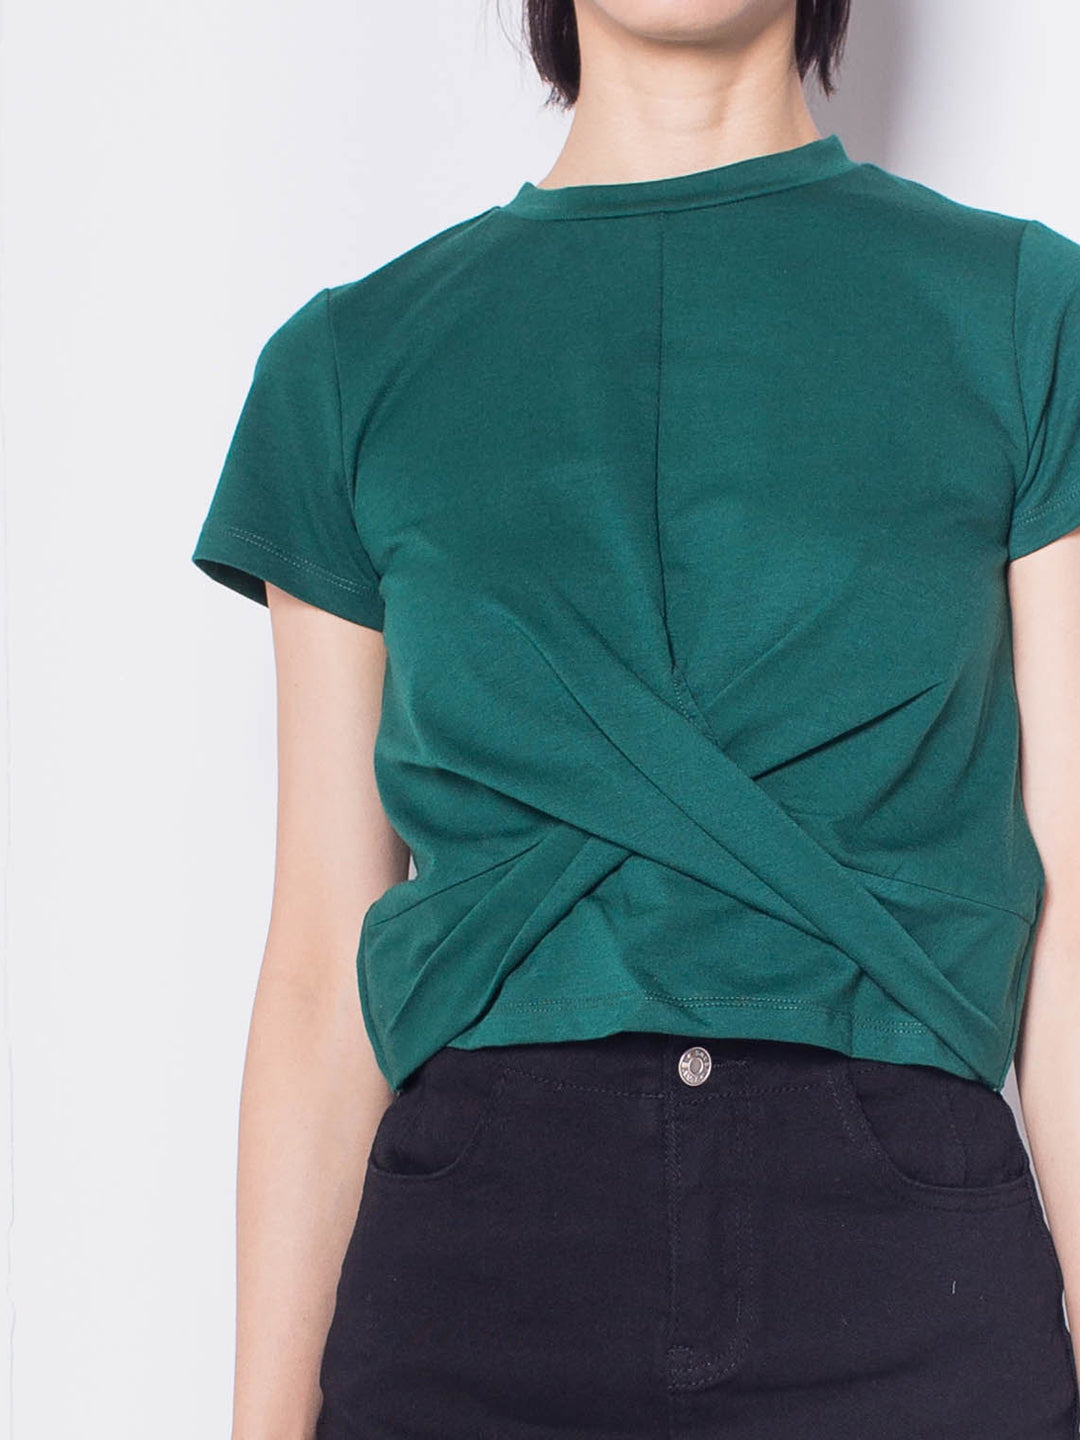 Women Twist Front Short Sleeve Blouse - Green